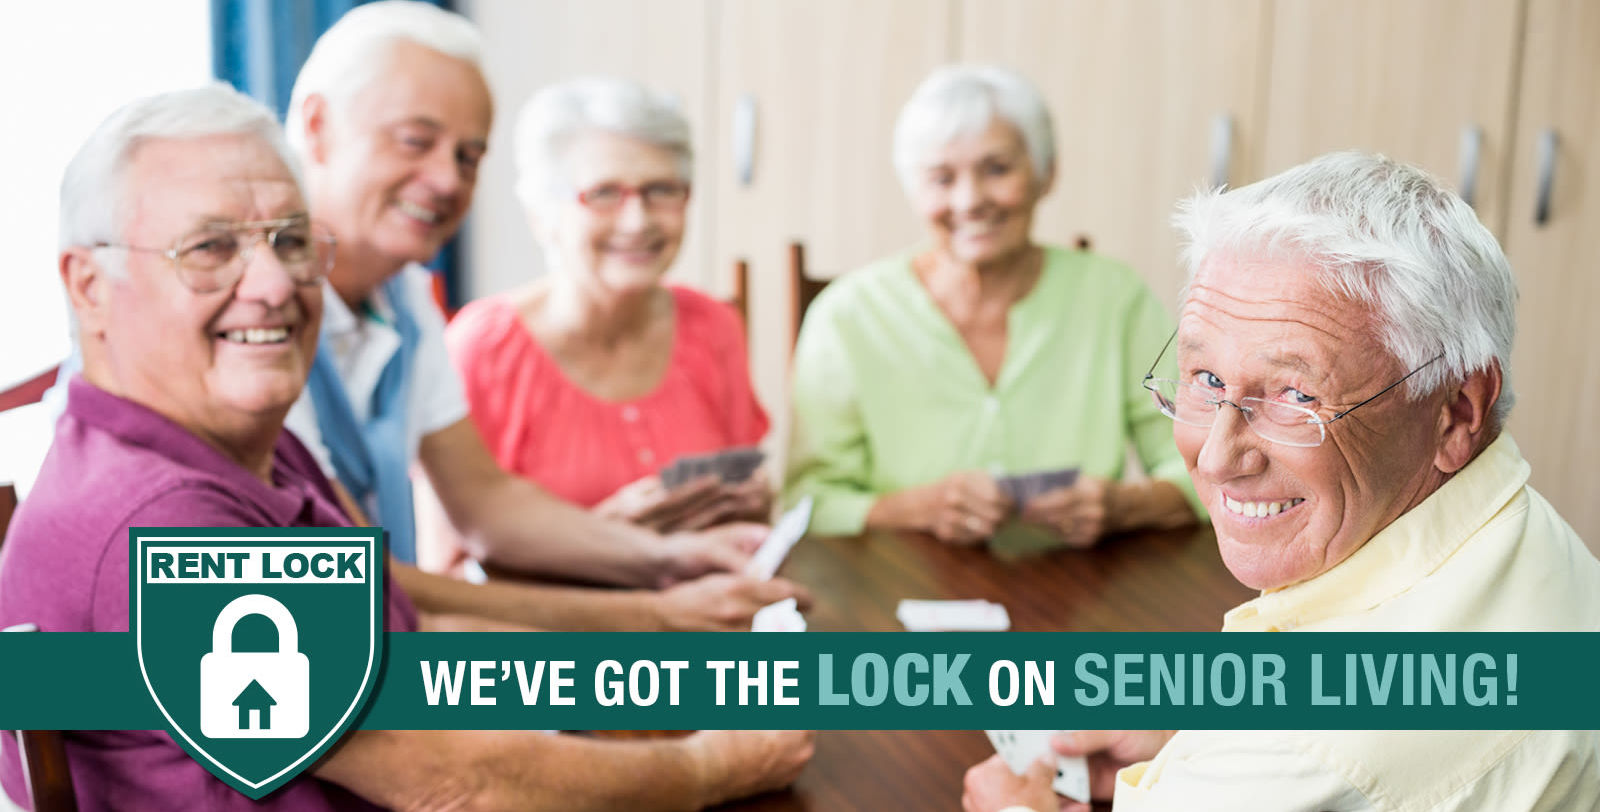 Rent Protection Pricing at Sumter Senior Living in The Villages, Florida